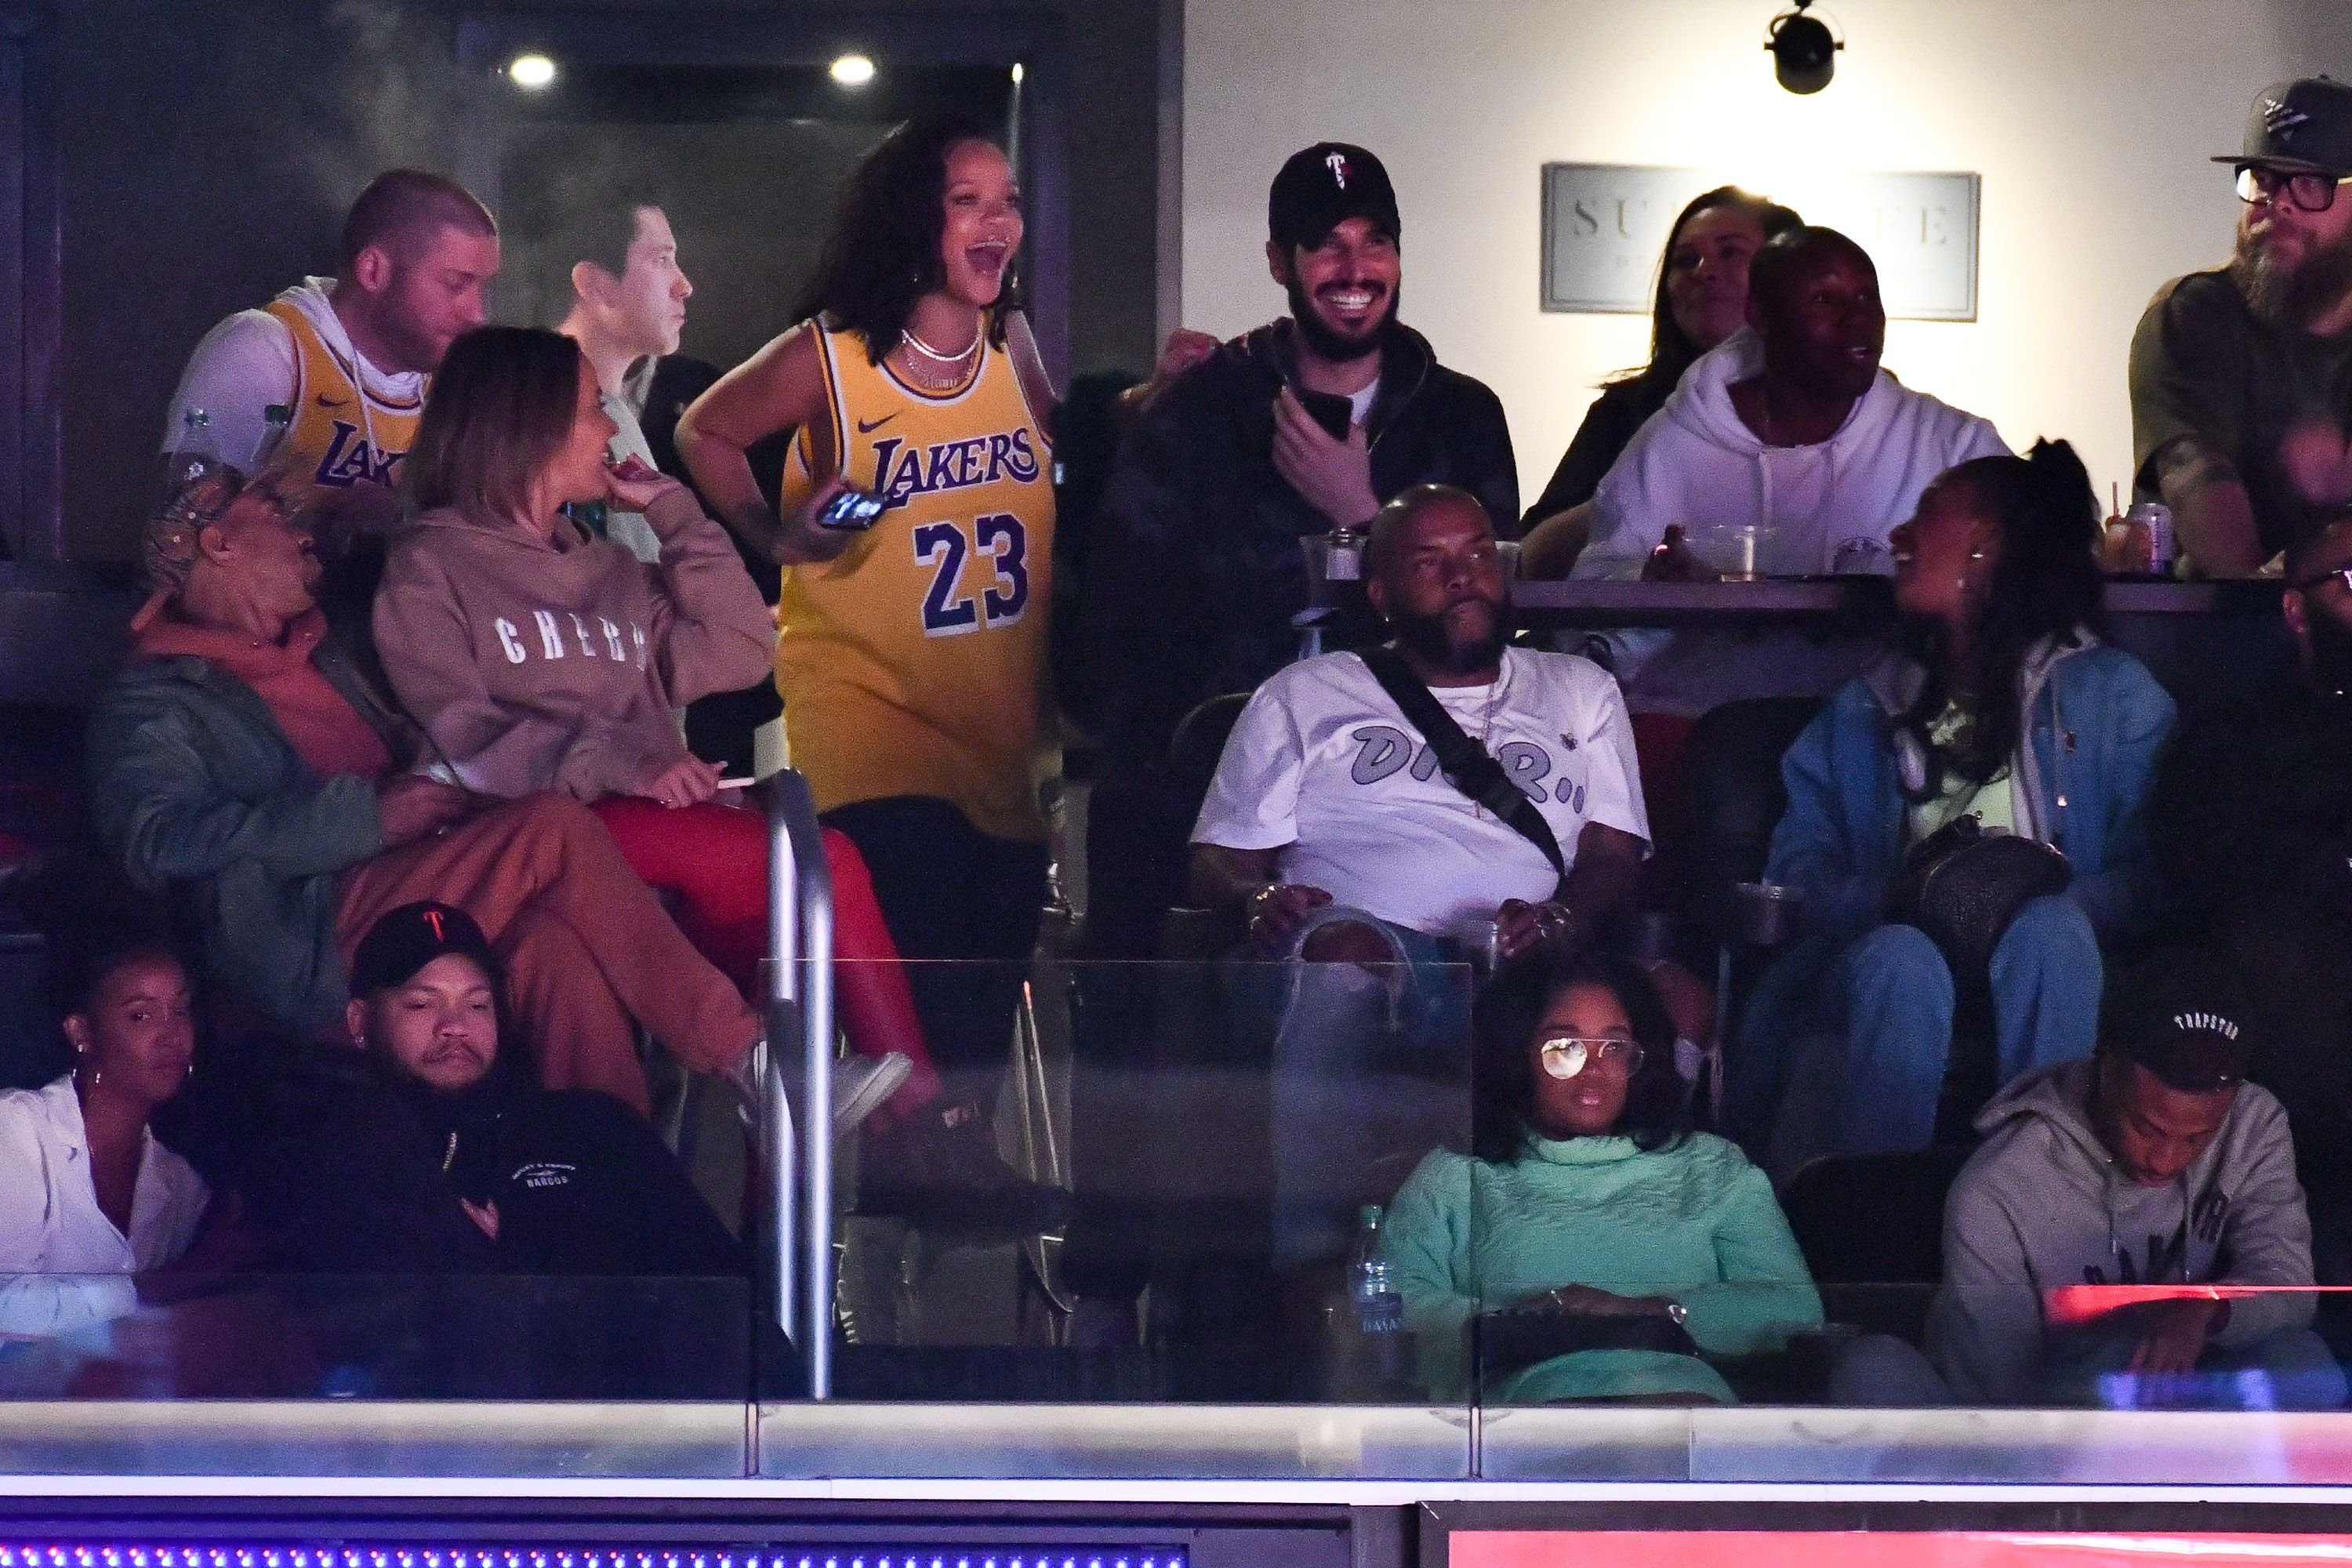 Rihanna Took Her Boyfriend Hassan Jameel on Public Date to Lakers